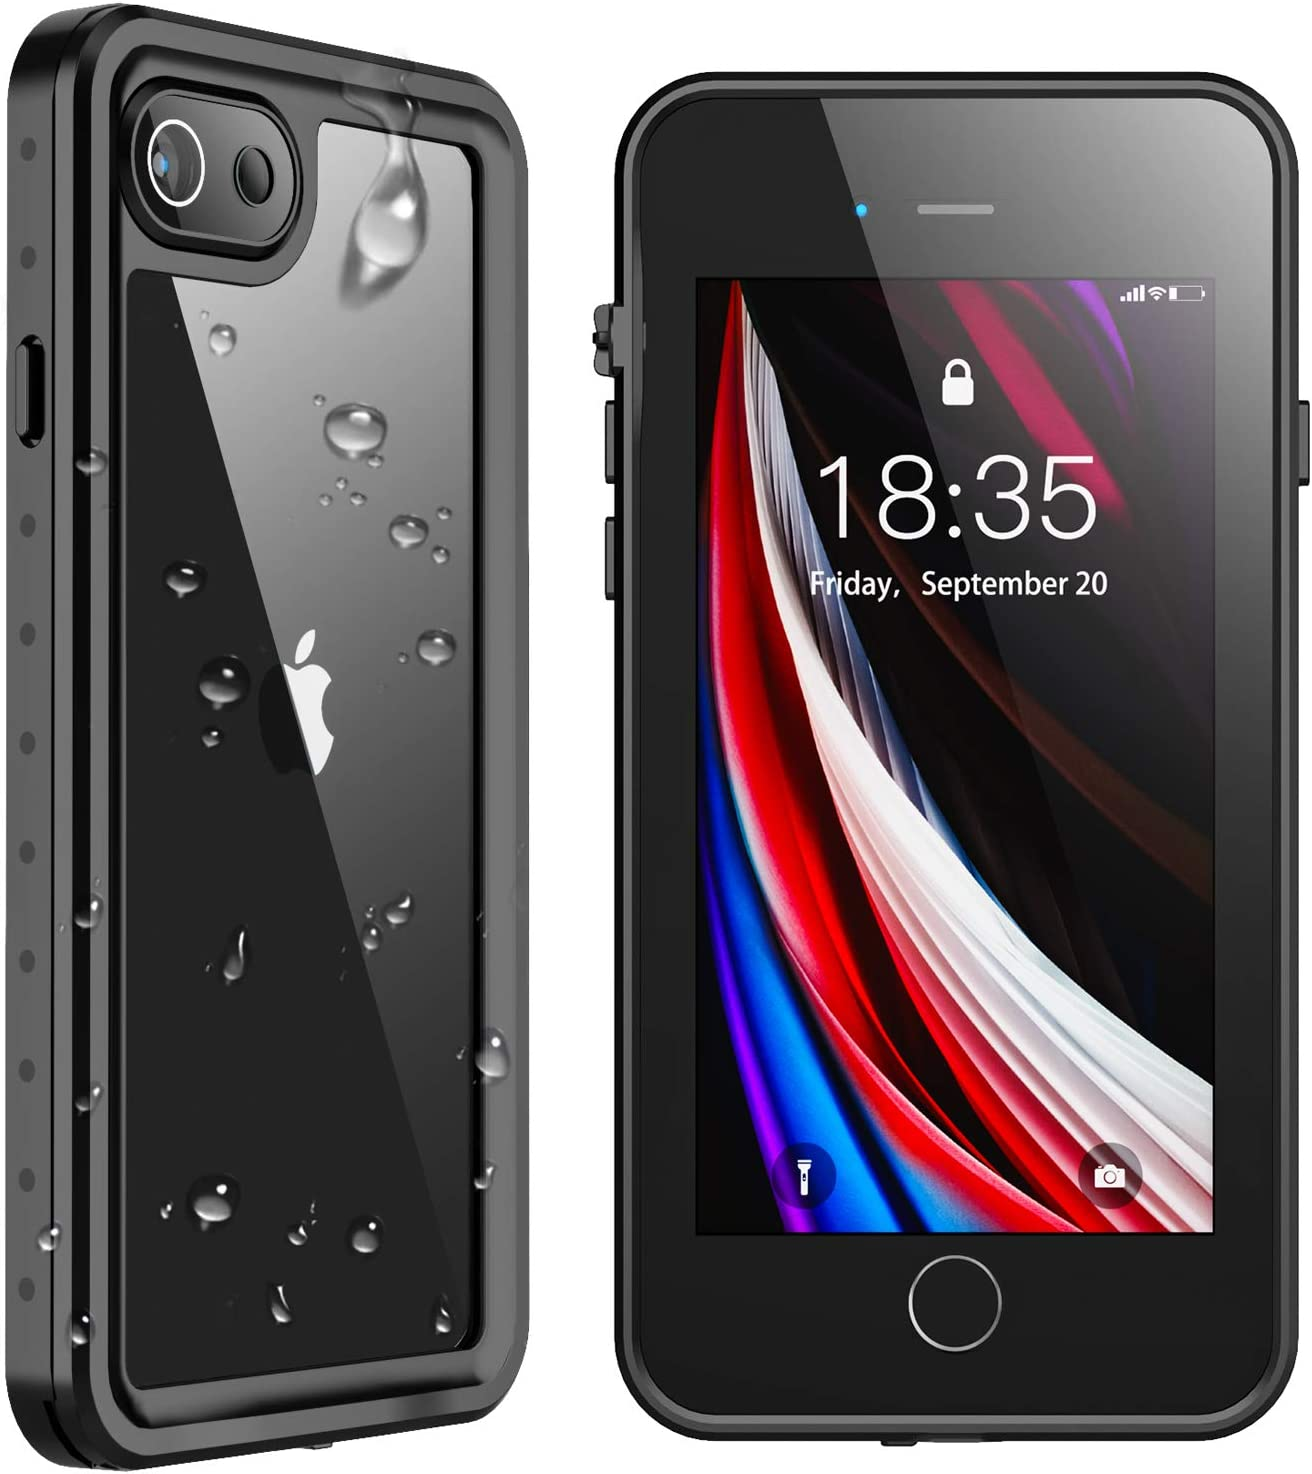 SPIDERCASE iPhone SE 2020 Case/iPhone 8/7 Waterproof Case, Built-in Screen Protector Full Body Rugged Protective Case, Waterproof Shockproof Dirtproof Snowproof, Case for iPhone SE 2020/8/7, 4.7